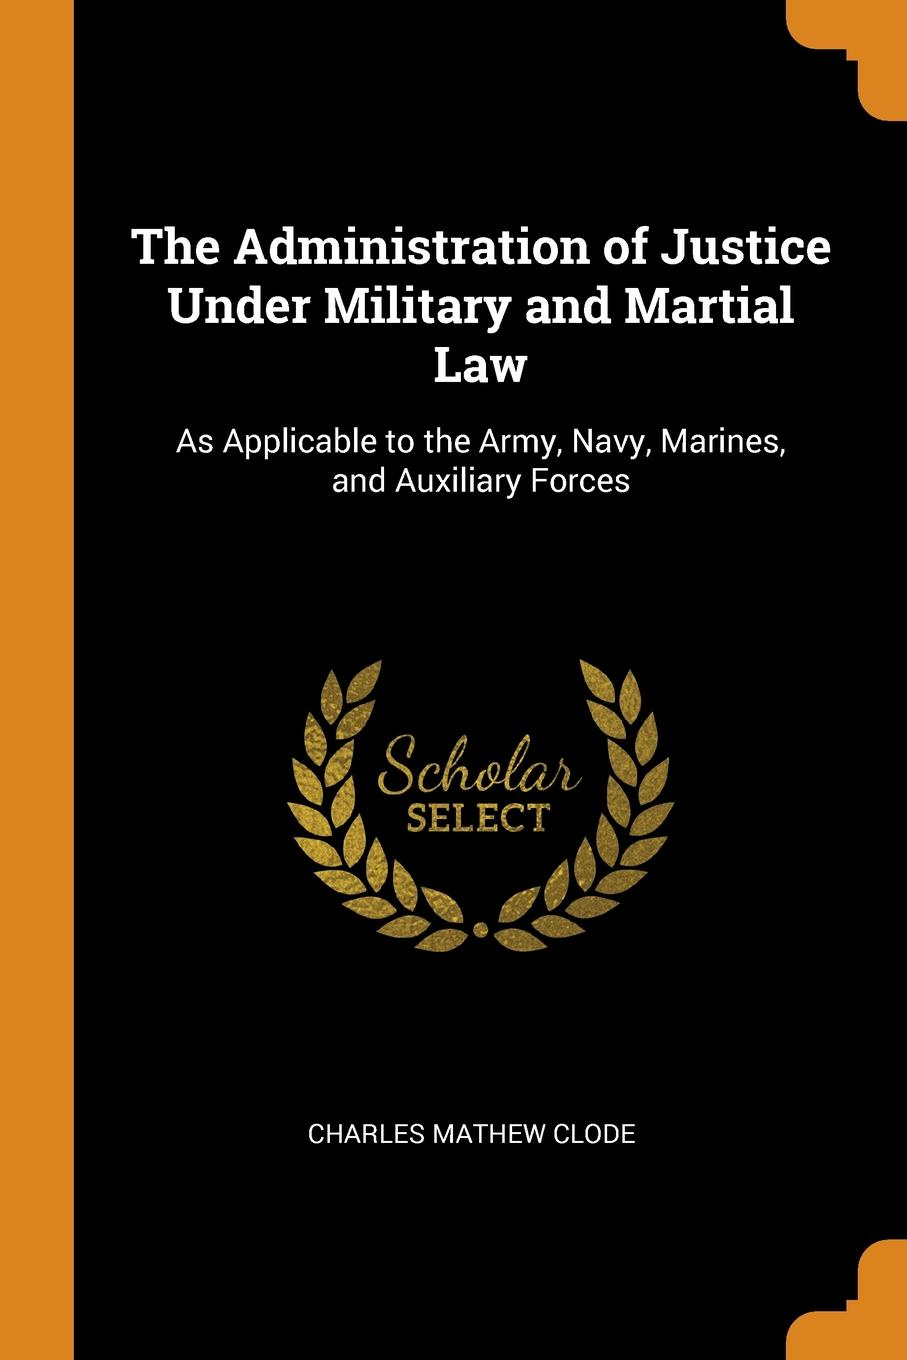 The Administration of Justice Under Military and Martial Law. As Applicable to the Army, Navy, Marines, and Auxiliary Forces. Charles Mathew Clode